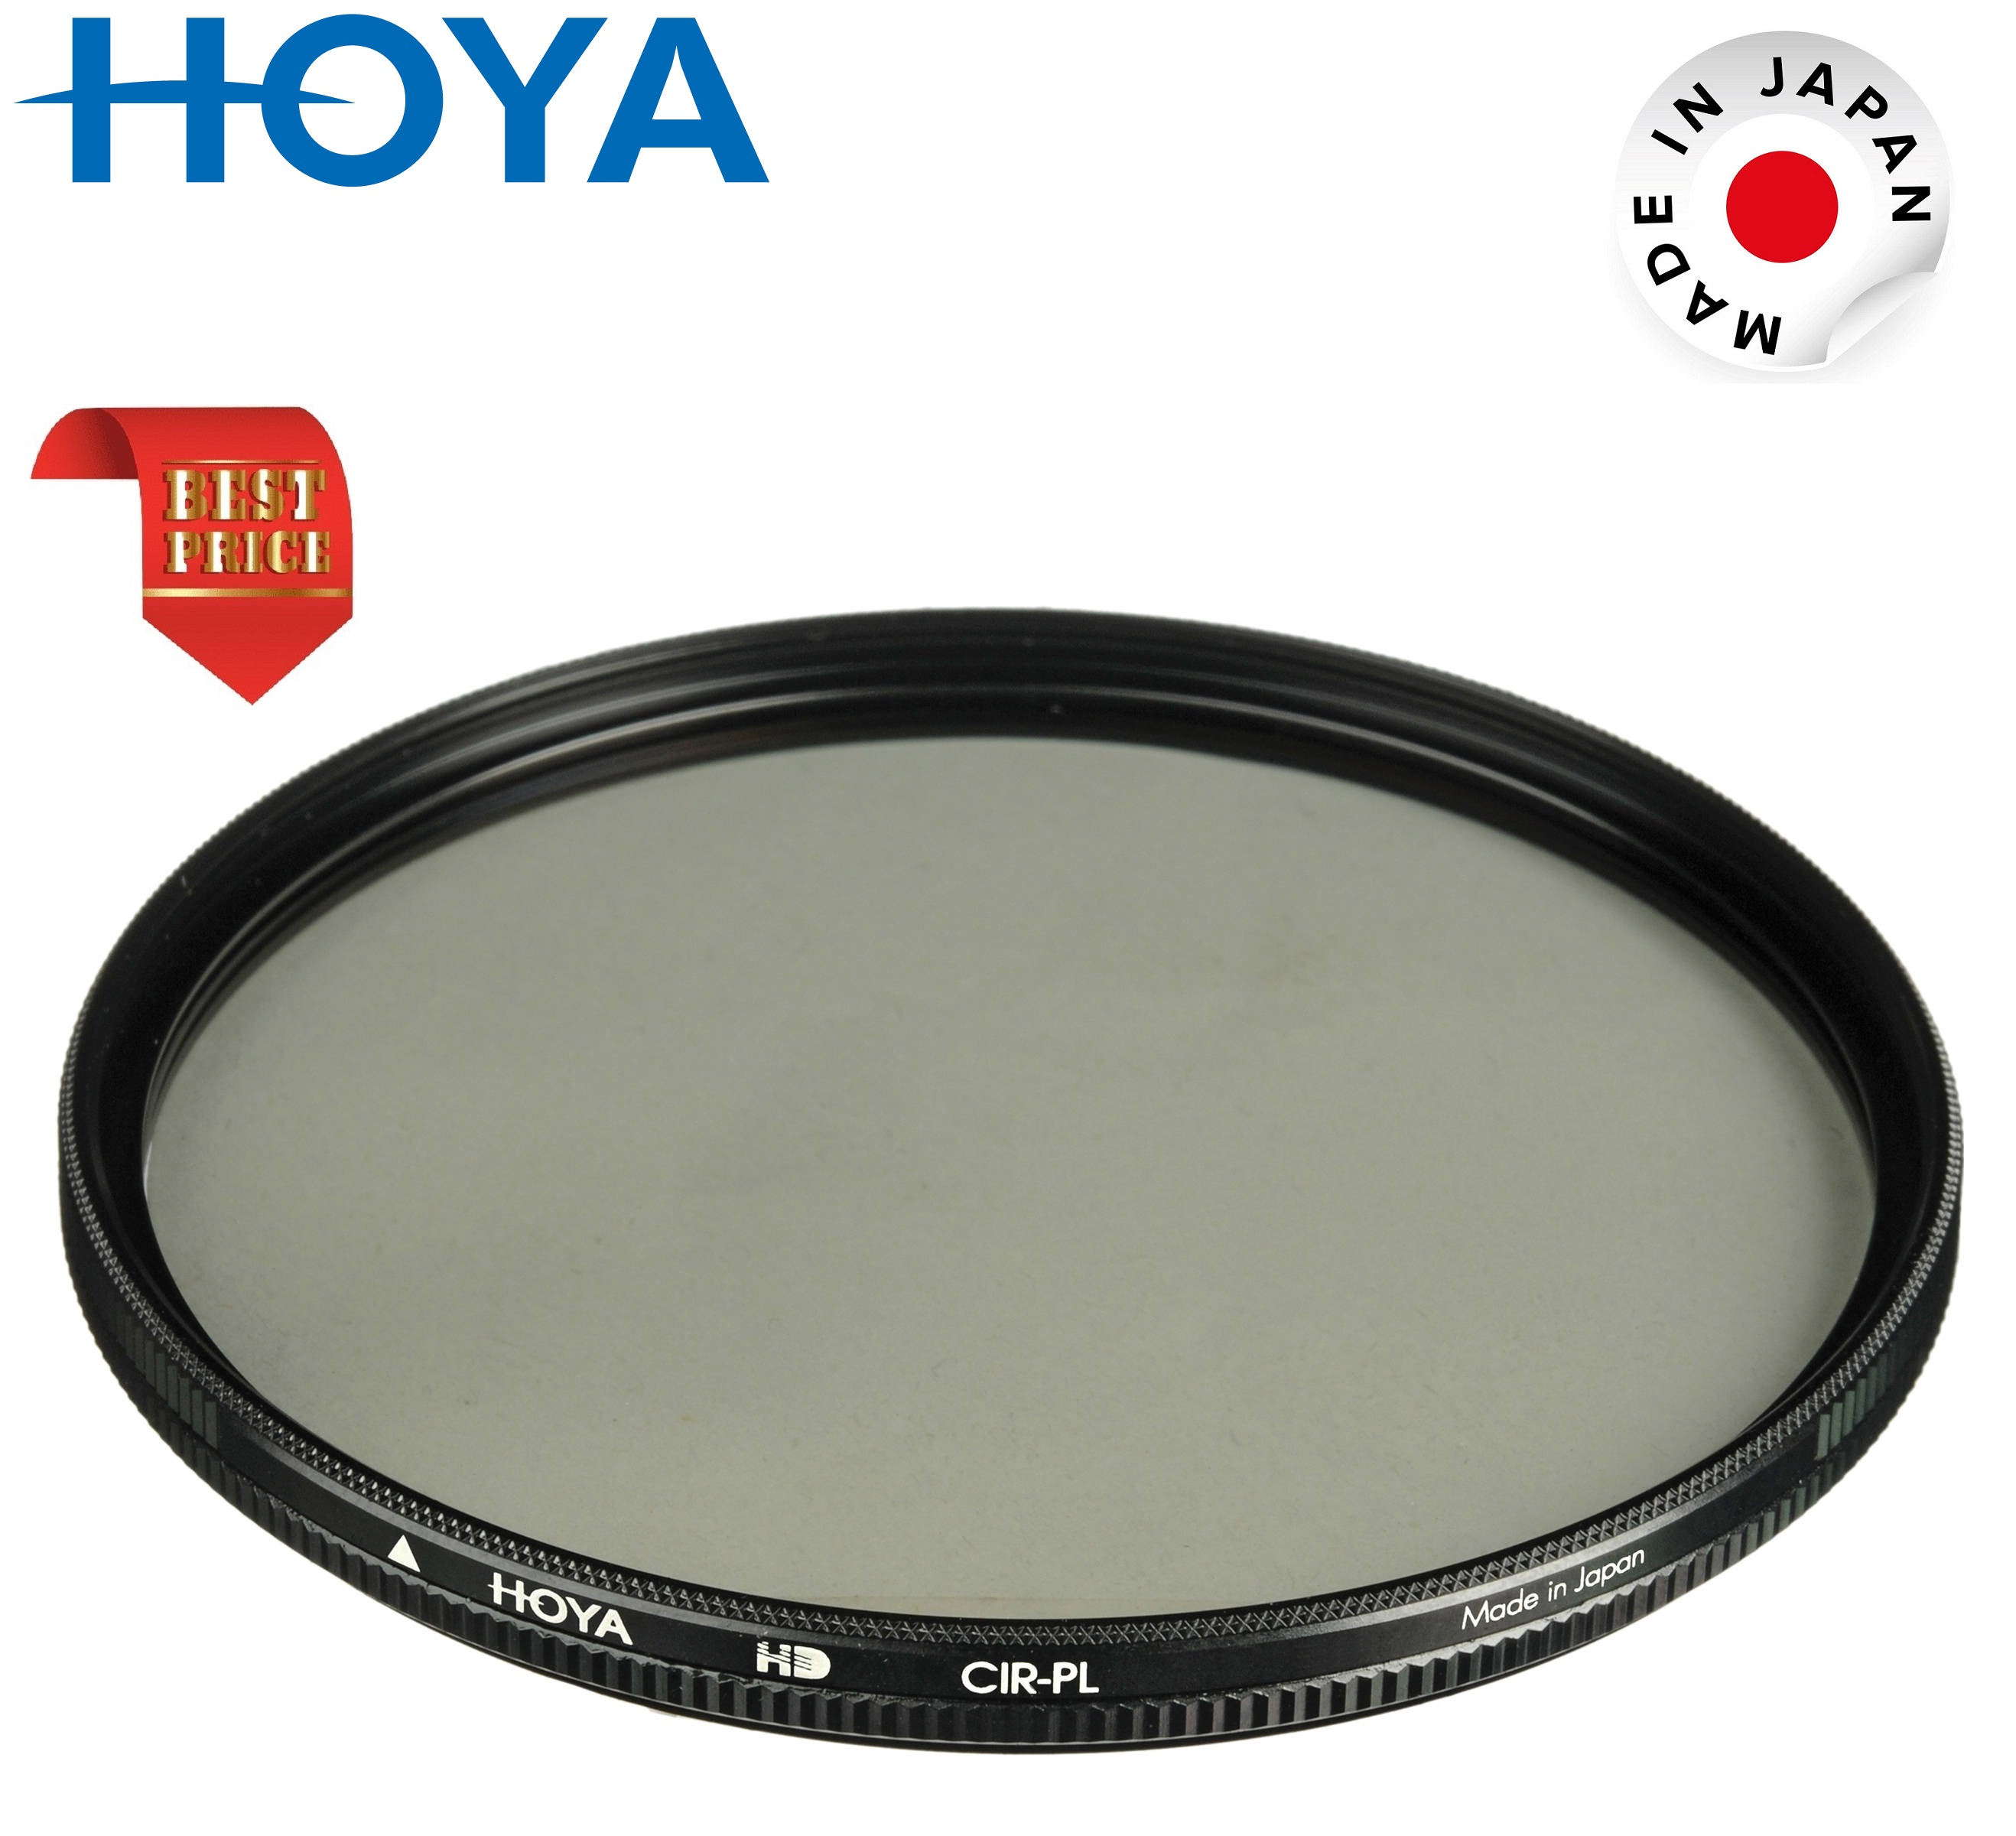 Hoya 46mm HD High Definition Digital Circular Polarizer Filter